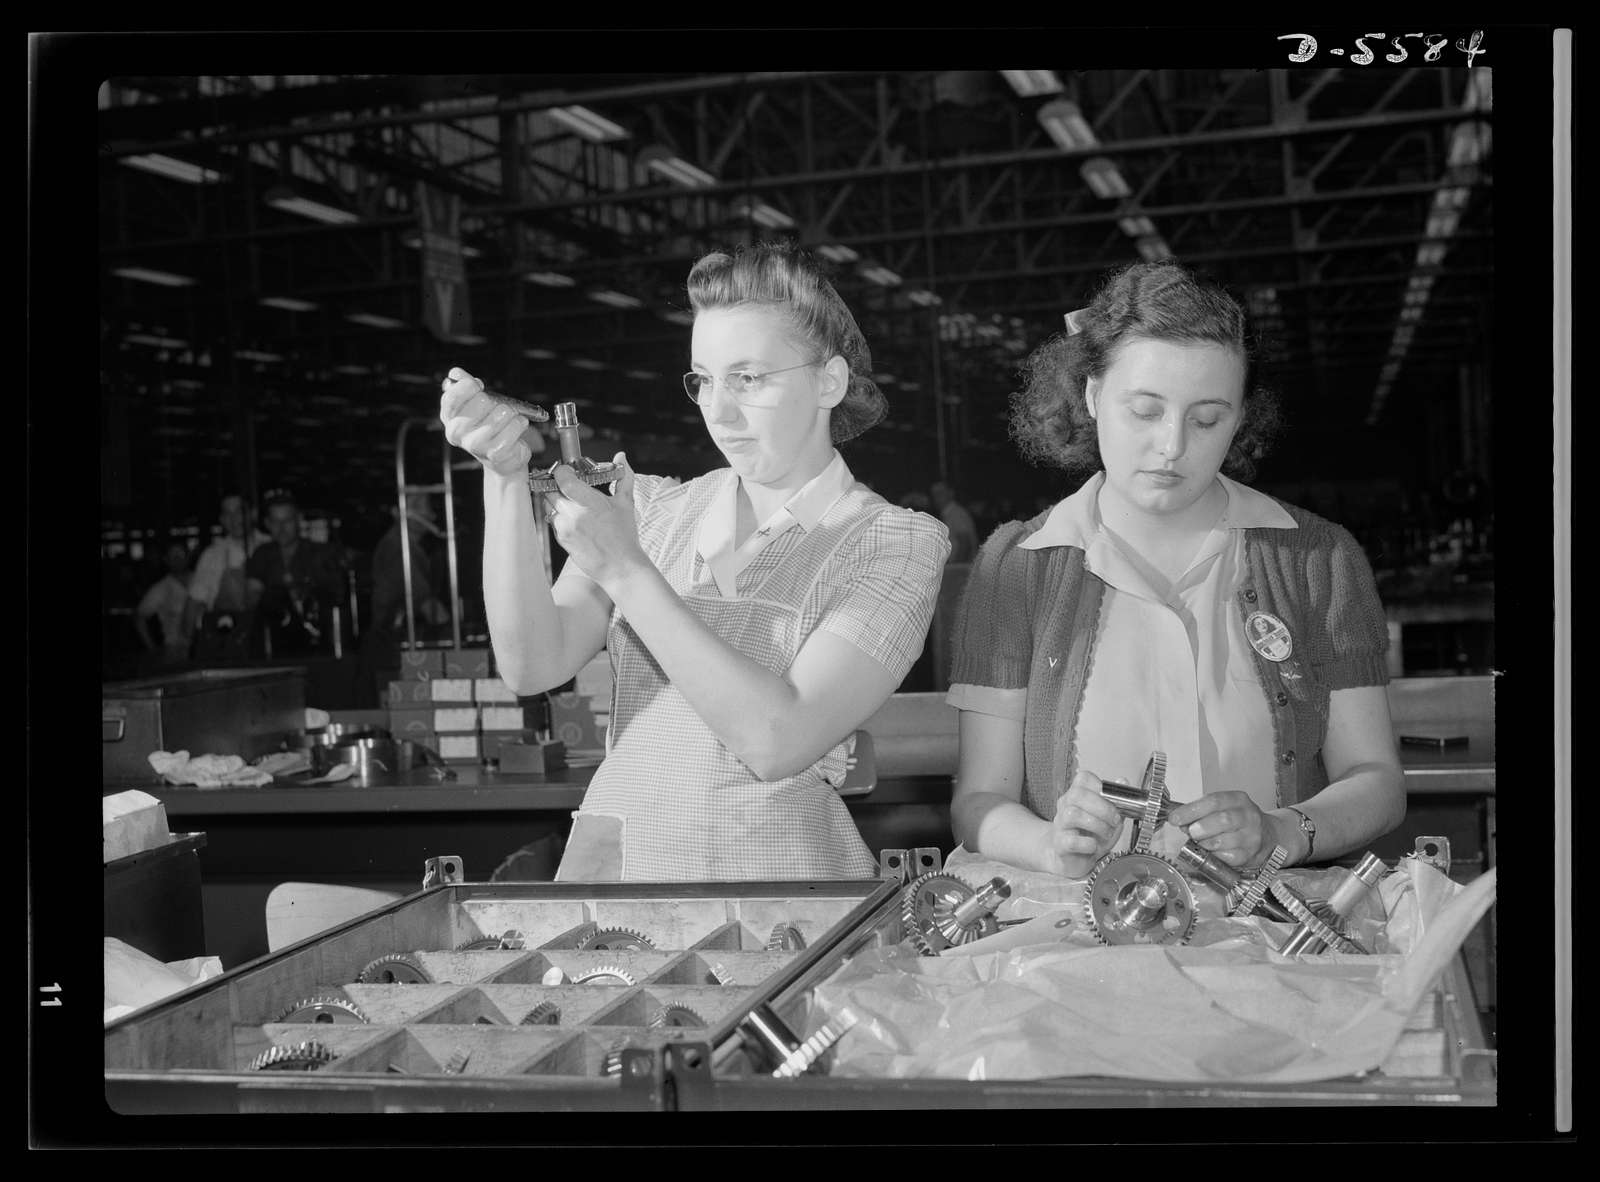 Production. Aircraft engines. Hundreds of gears pass through the expert hands of Dorothy Miller and Sylvia Dreiser during their eight-hour working day in a large Midwest aircraft plant. Inspection of these vital cogs in America's war machine is a delicate task and one which requires infinite patience and precision. Melrose Park, Buick plant